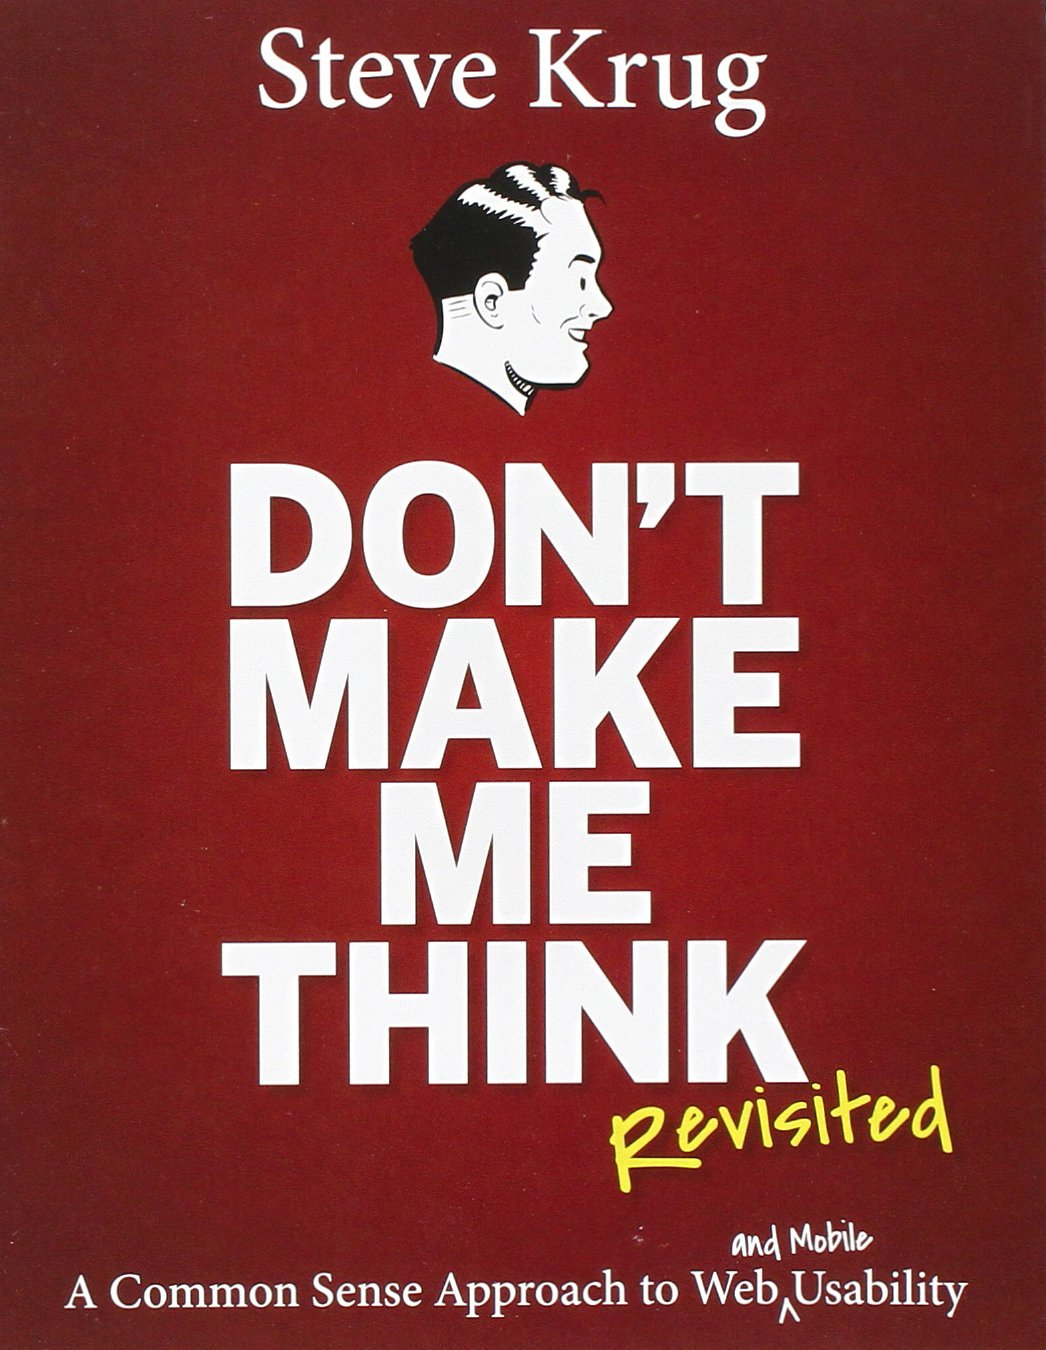 Link to Book Review: Don't make me think